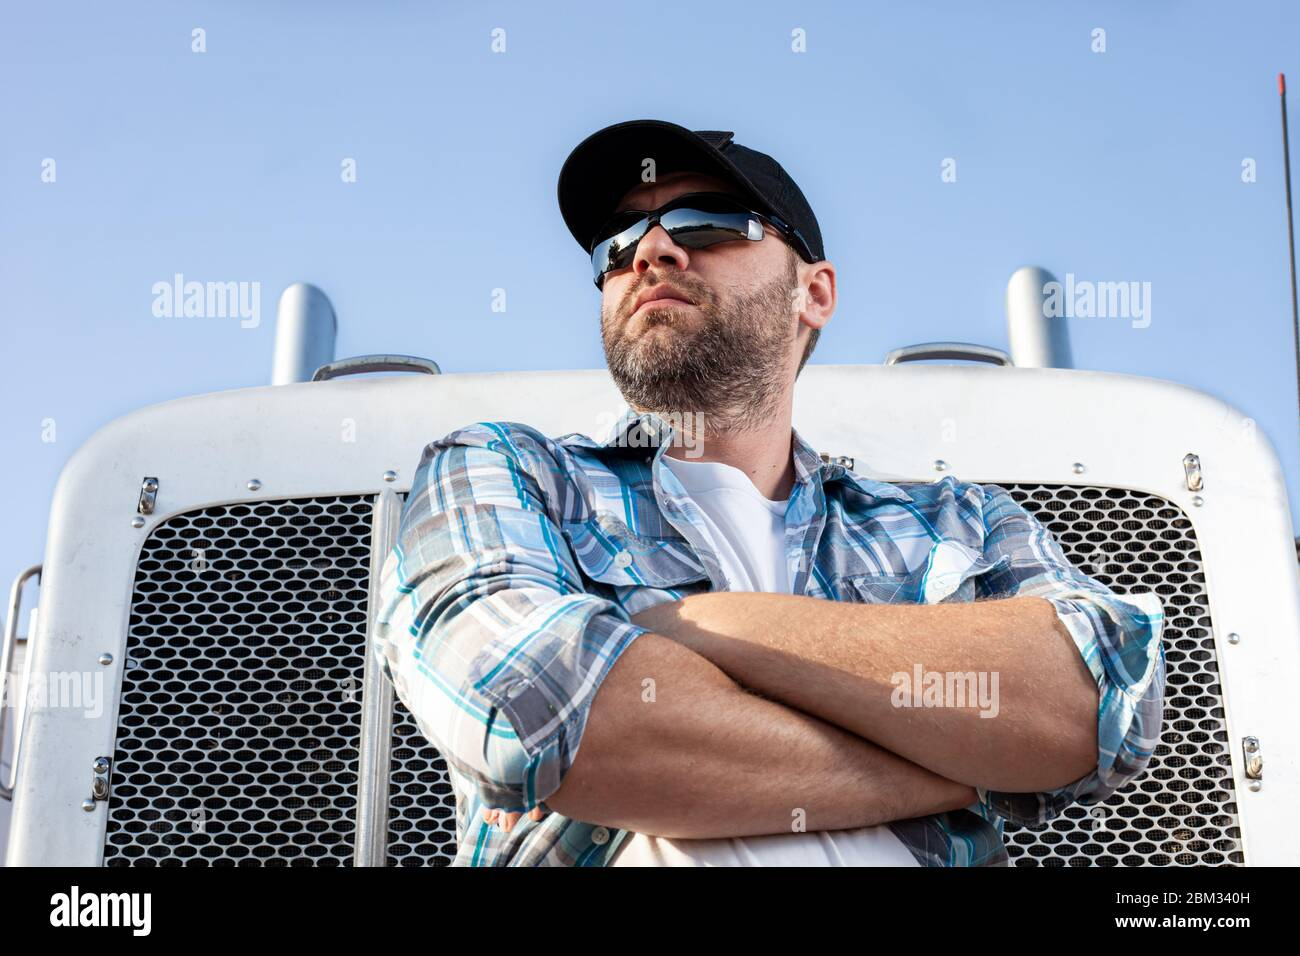 Confident semi truck driver wearing plaid shirt and black baseball cap  stands with arms crossed in front of big rig. Stock Photo